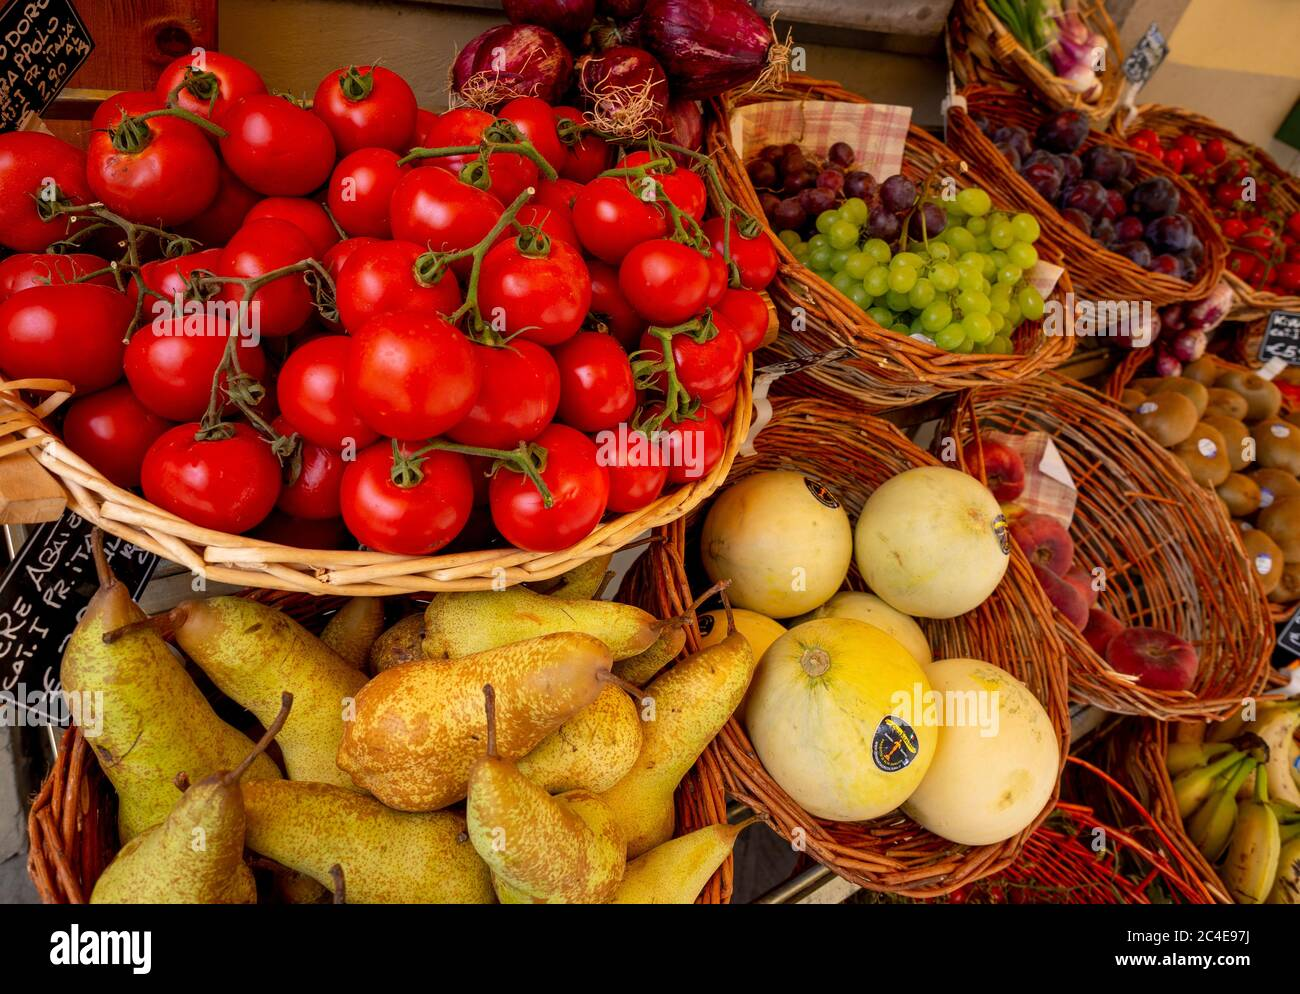 Fresh fruit and vegetables displayed in baskets outside an Italian greengrocers. Stock Photo